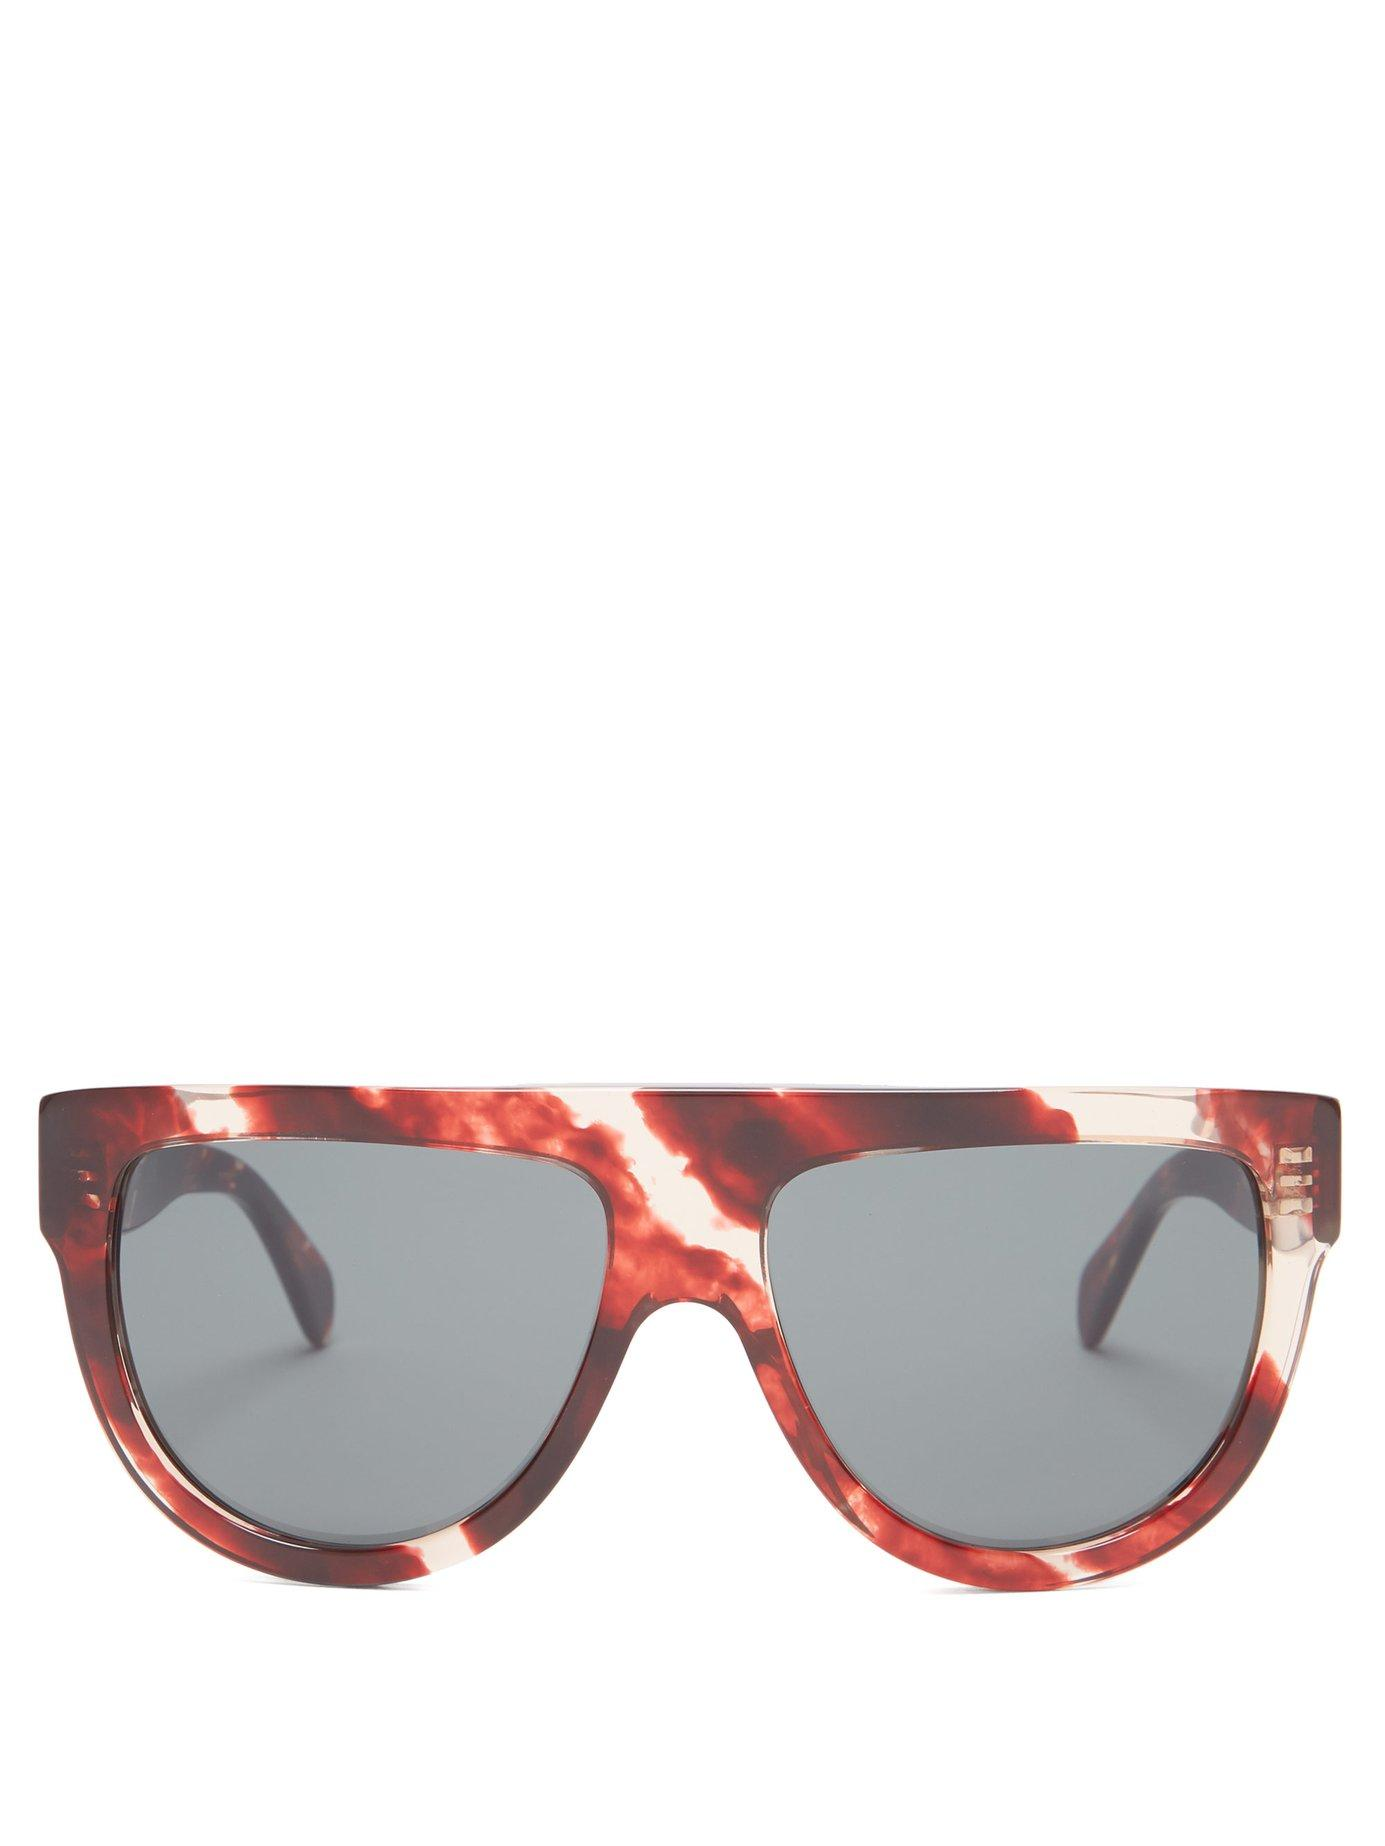 bef9747f95ad Lyst - Céline Shadow D Frame Marbled Acetate Sunglasses in Red